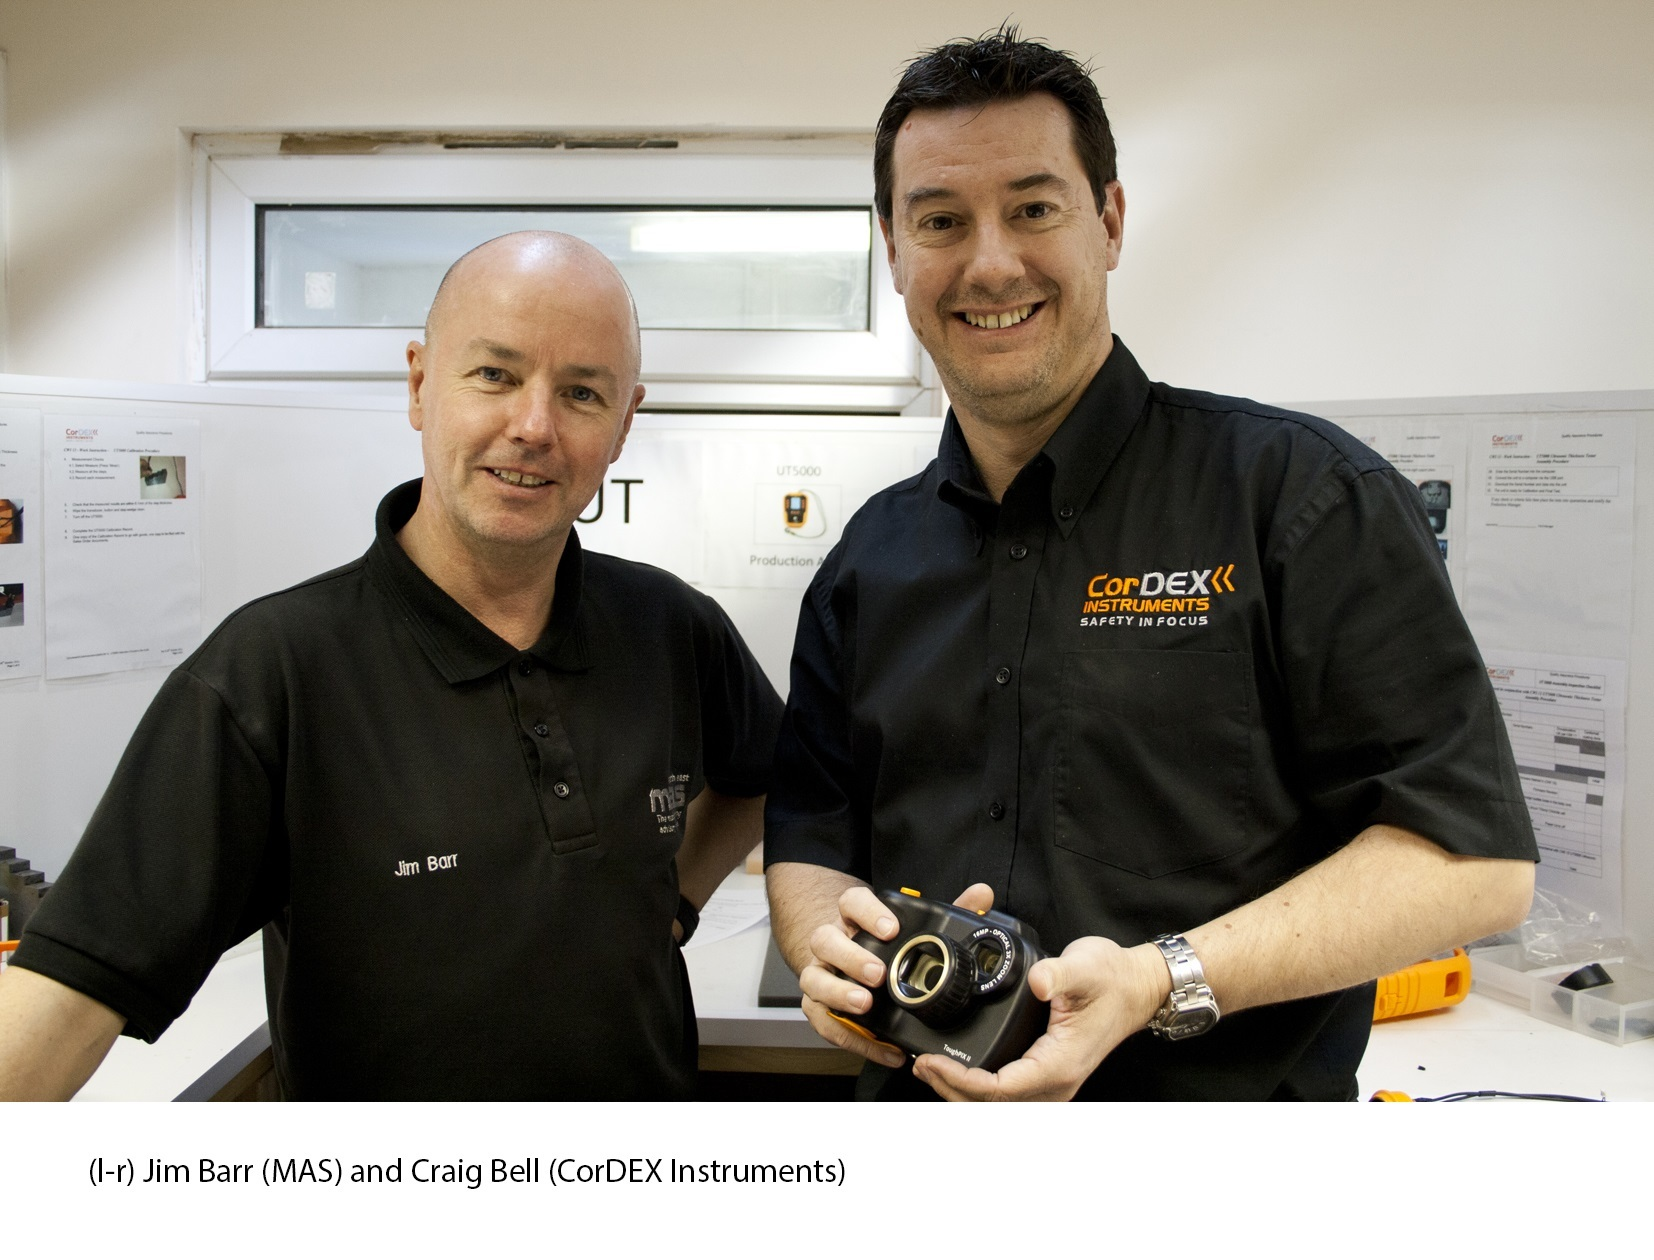 PICTURE PEREFCT: From left to right: Jim Barr (MAS) and Craig Bell (CorDEX Instruments)